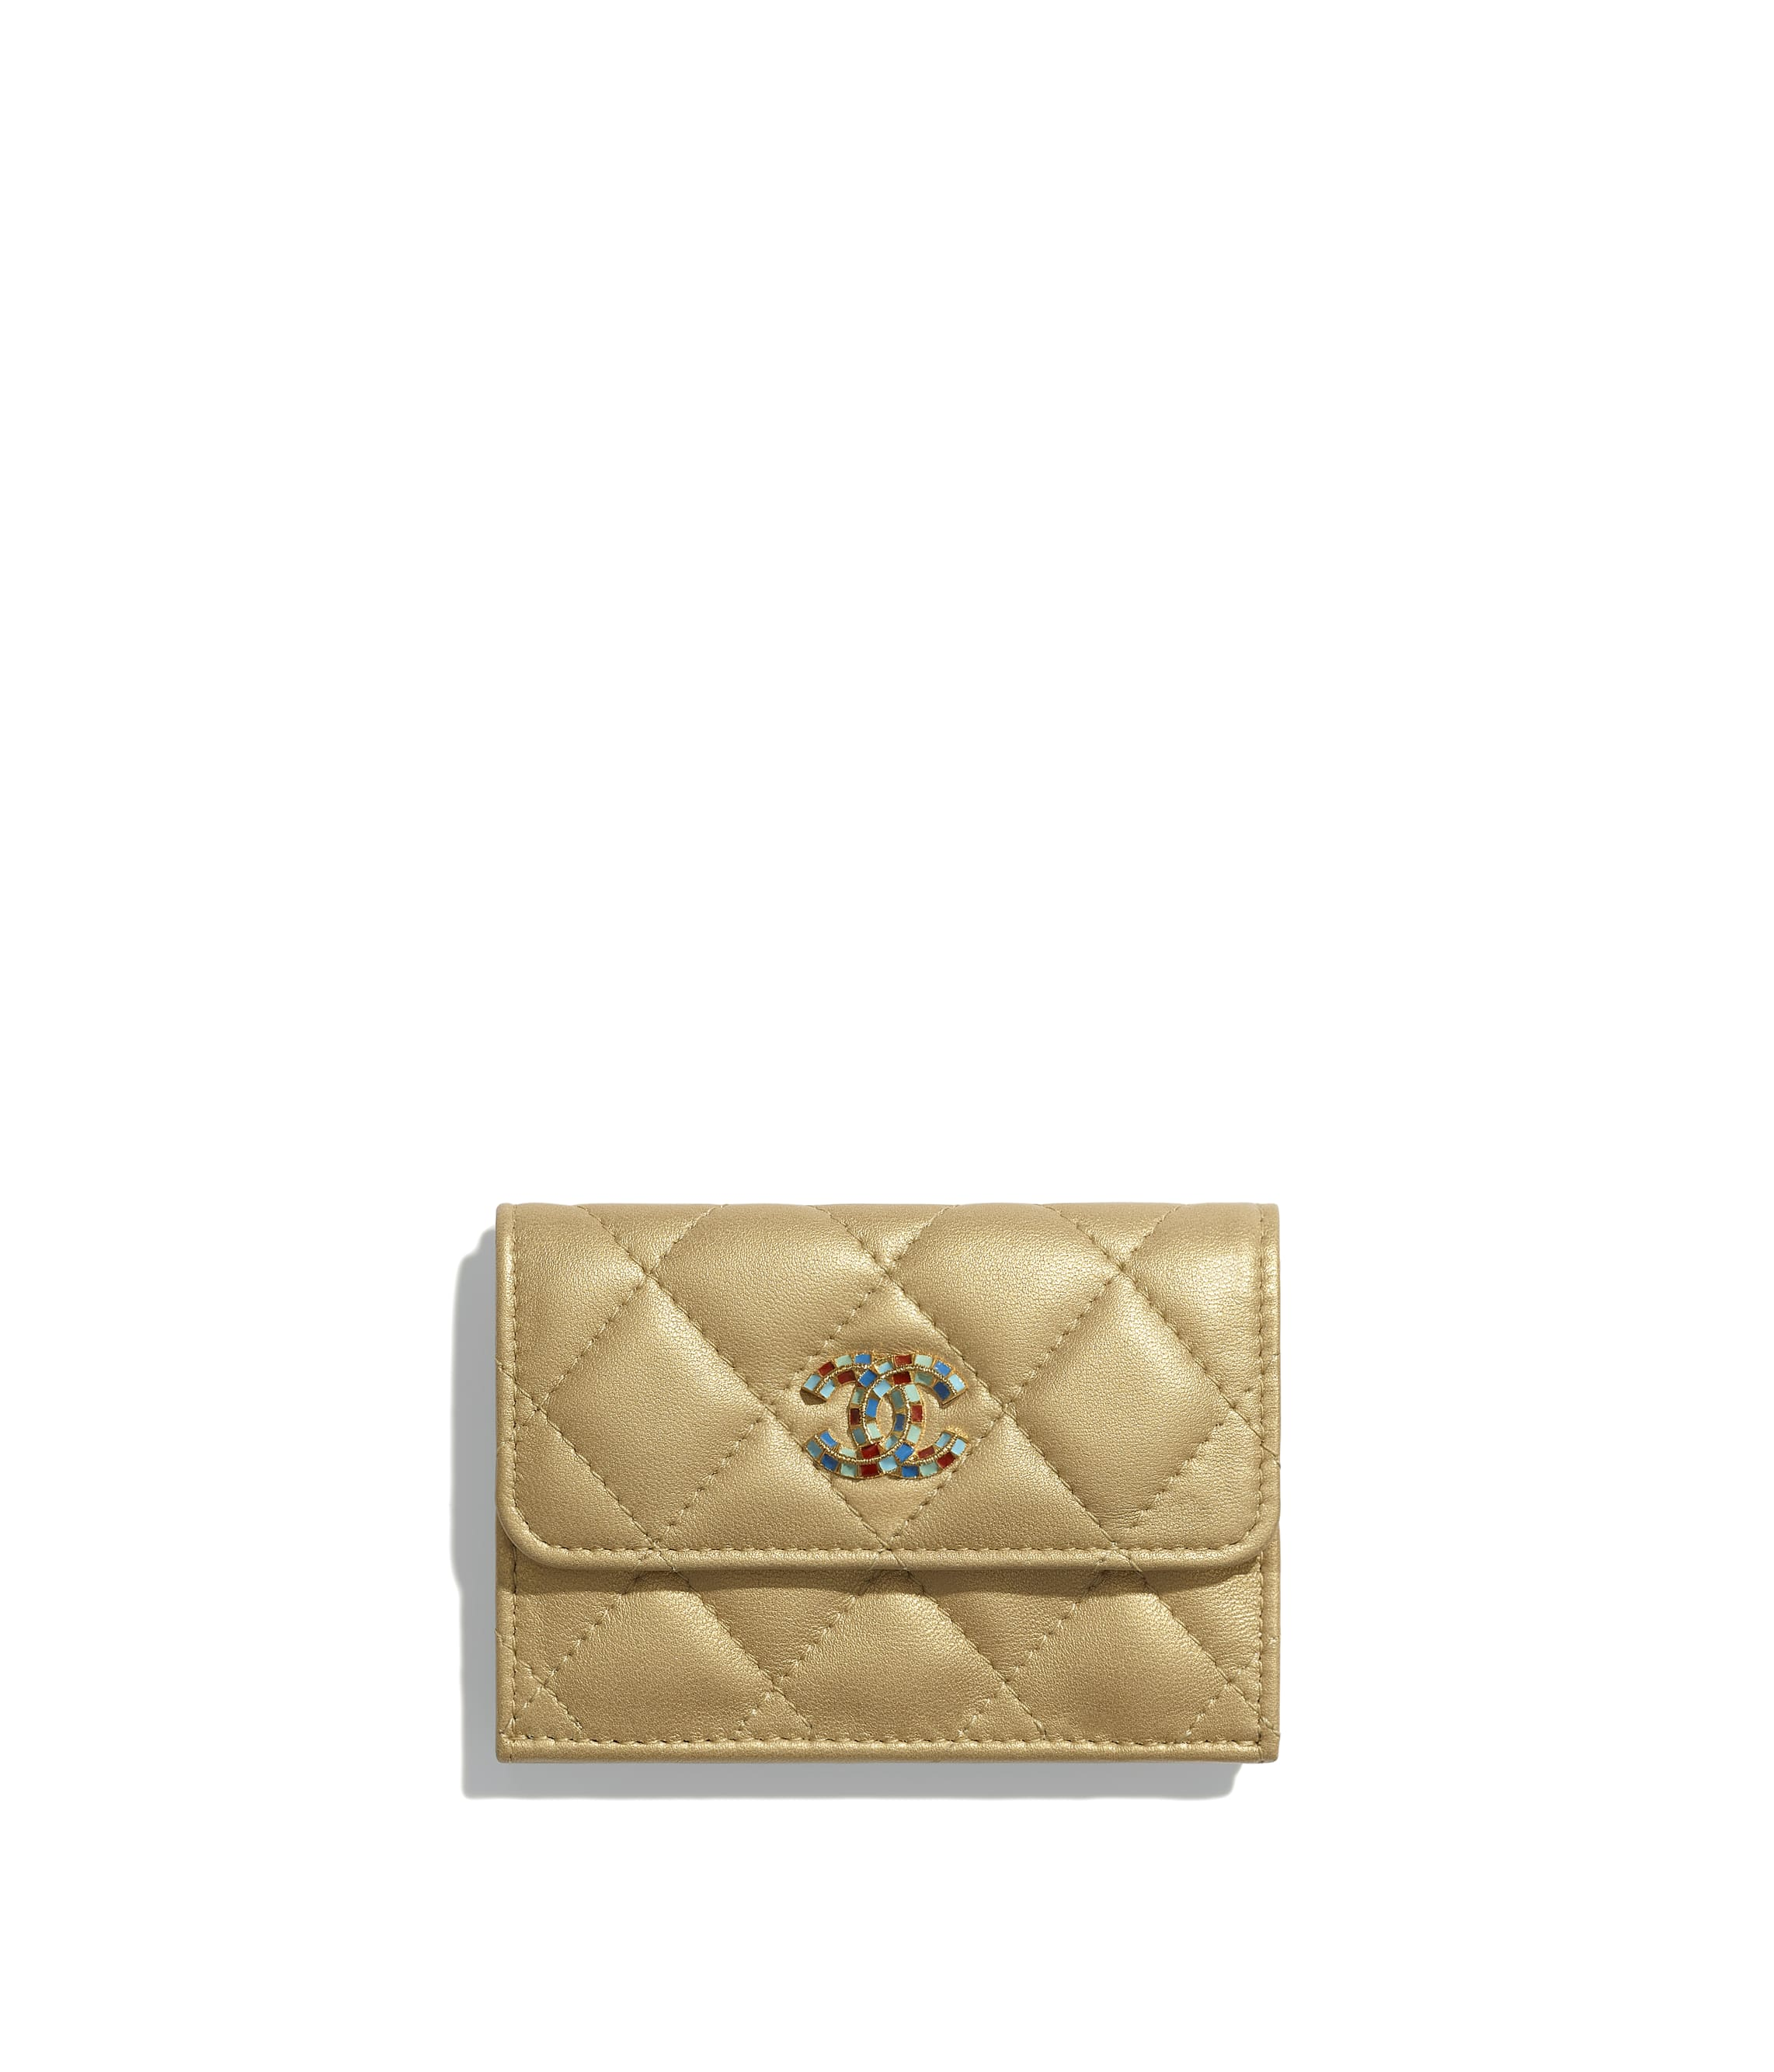 fdff7763b00ee Small Wallets - Small Leather Goods - CHANEL